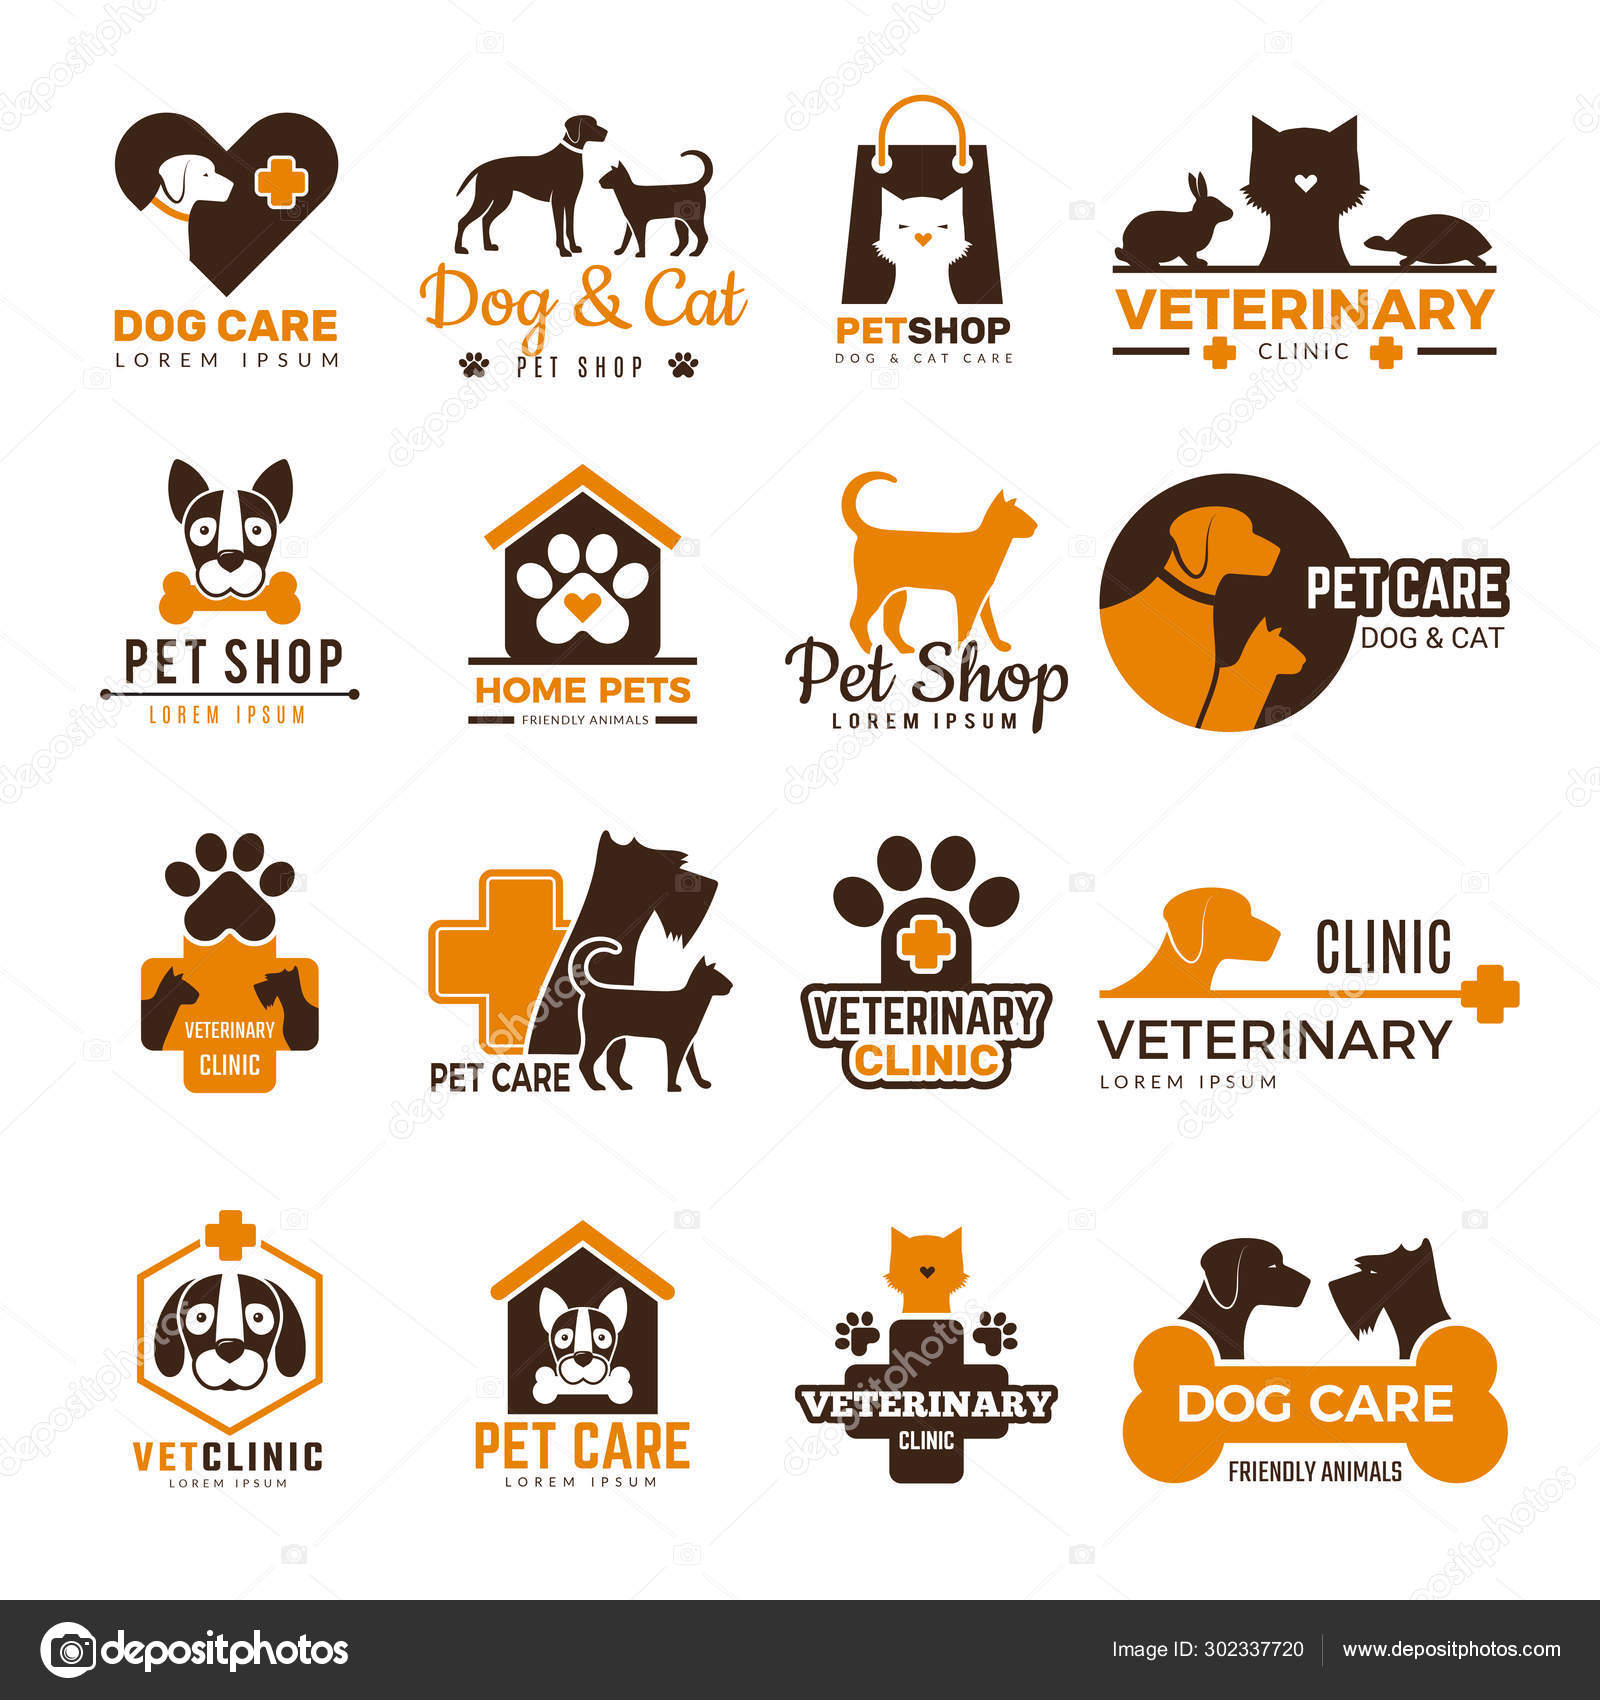 Vet Clinic Logo Pets Shop Cats Dogs Domestic Animals Protection Friendly Funny Symbols Vector Collection Stock Vector C Onyxprj 302337720